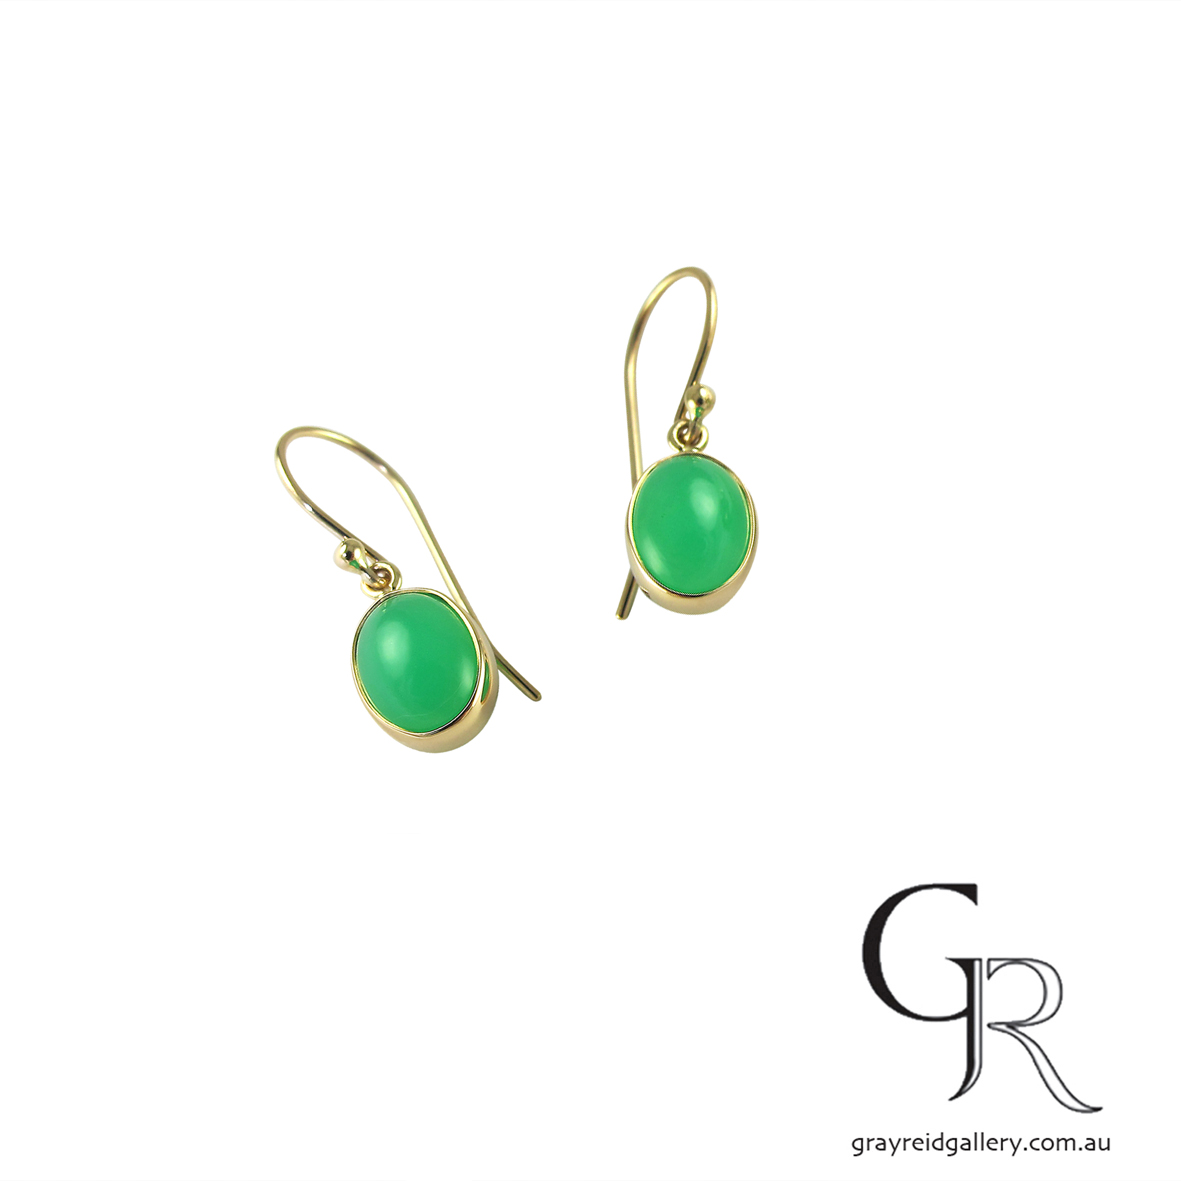 Chrysoprase Earrings in Yellow Gold